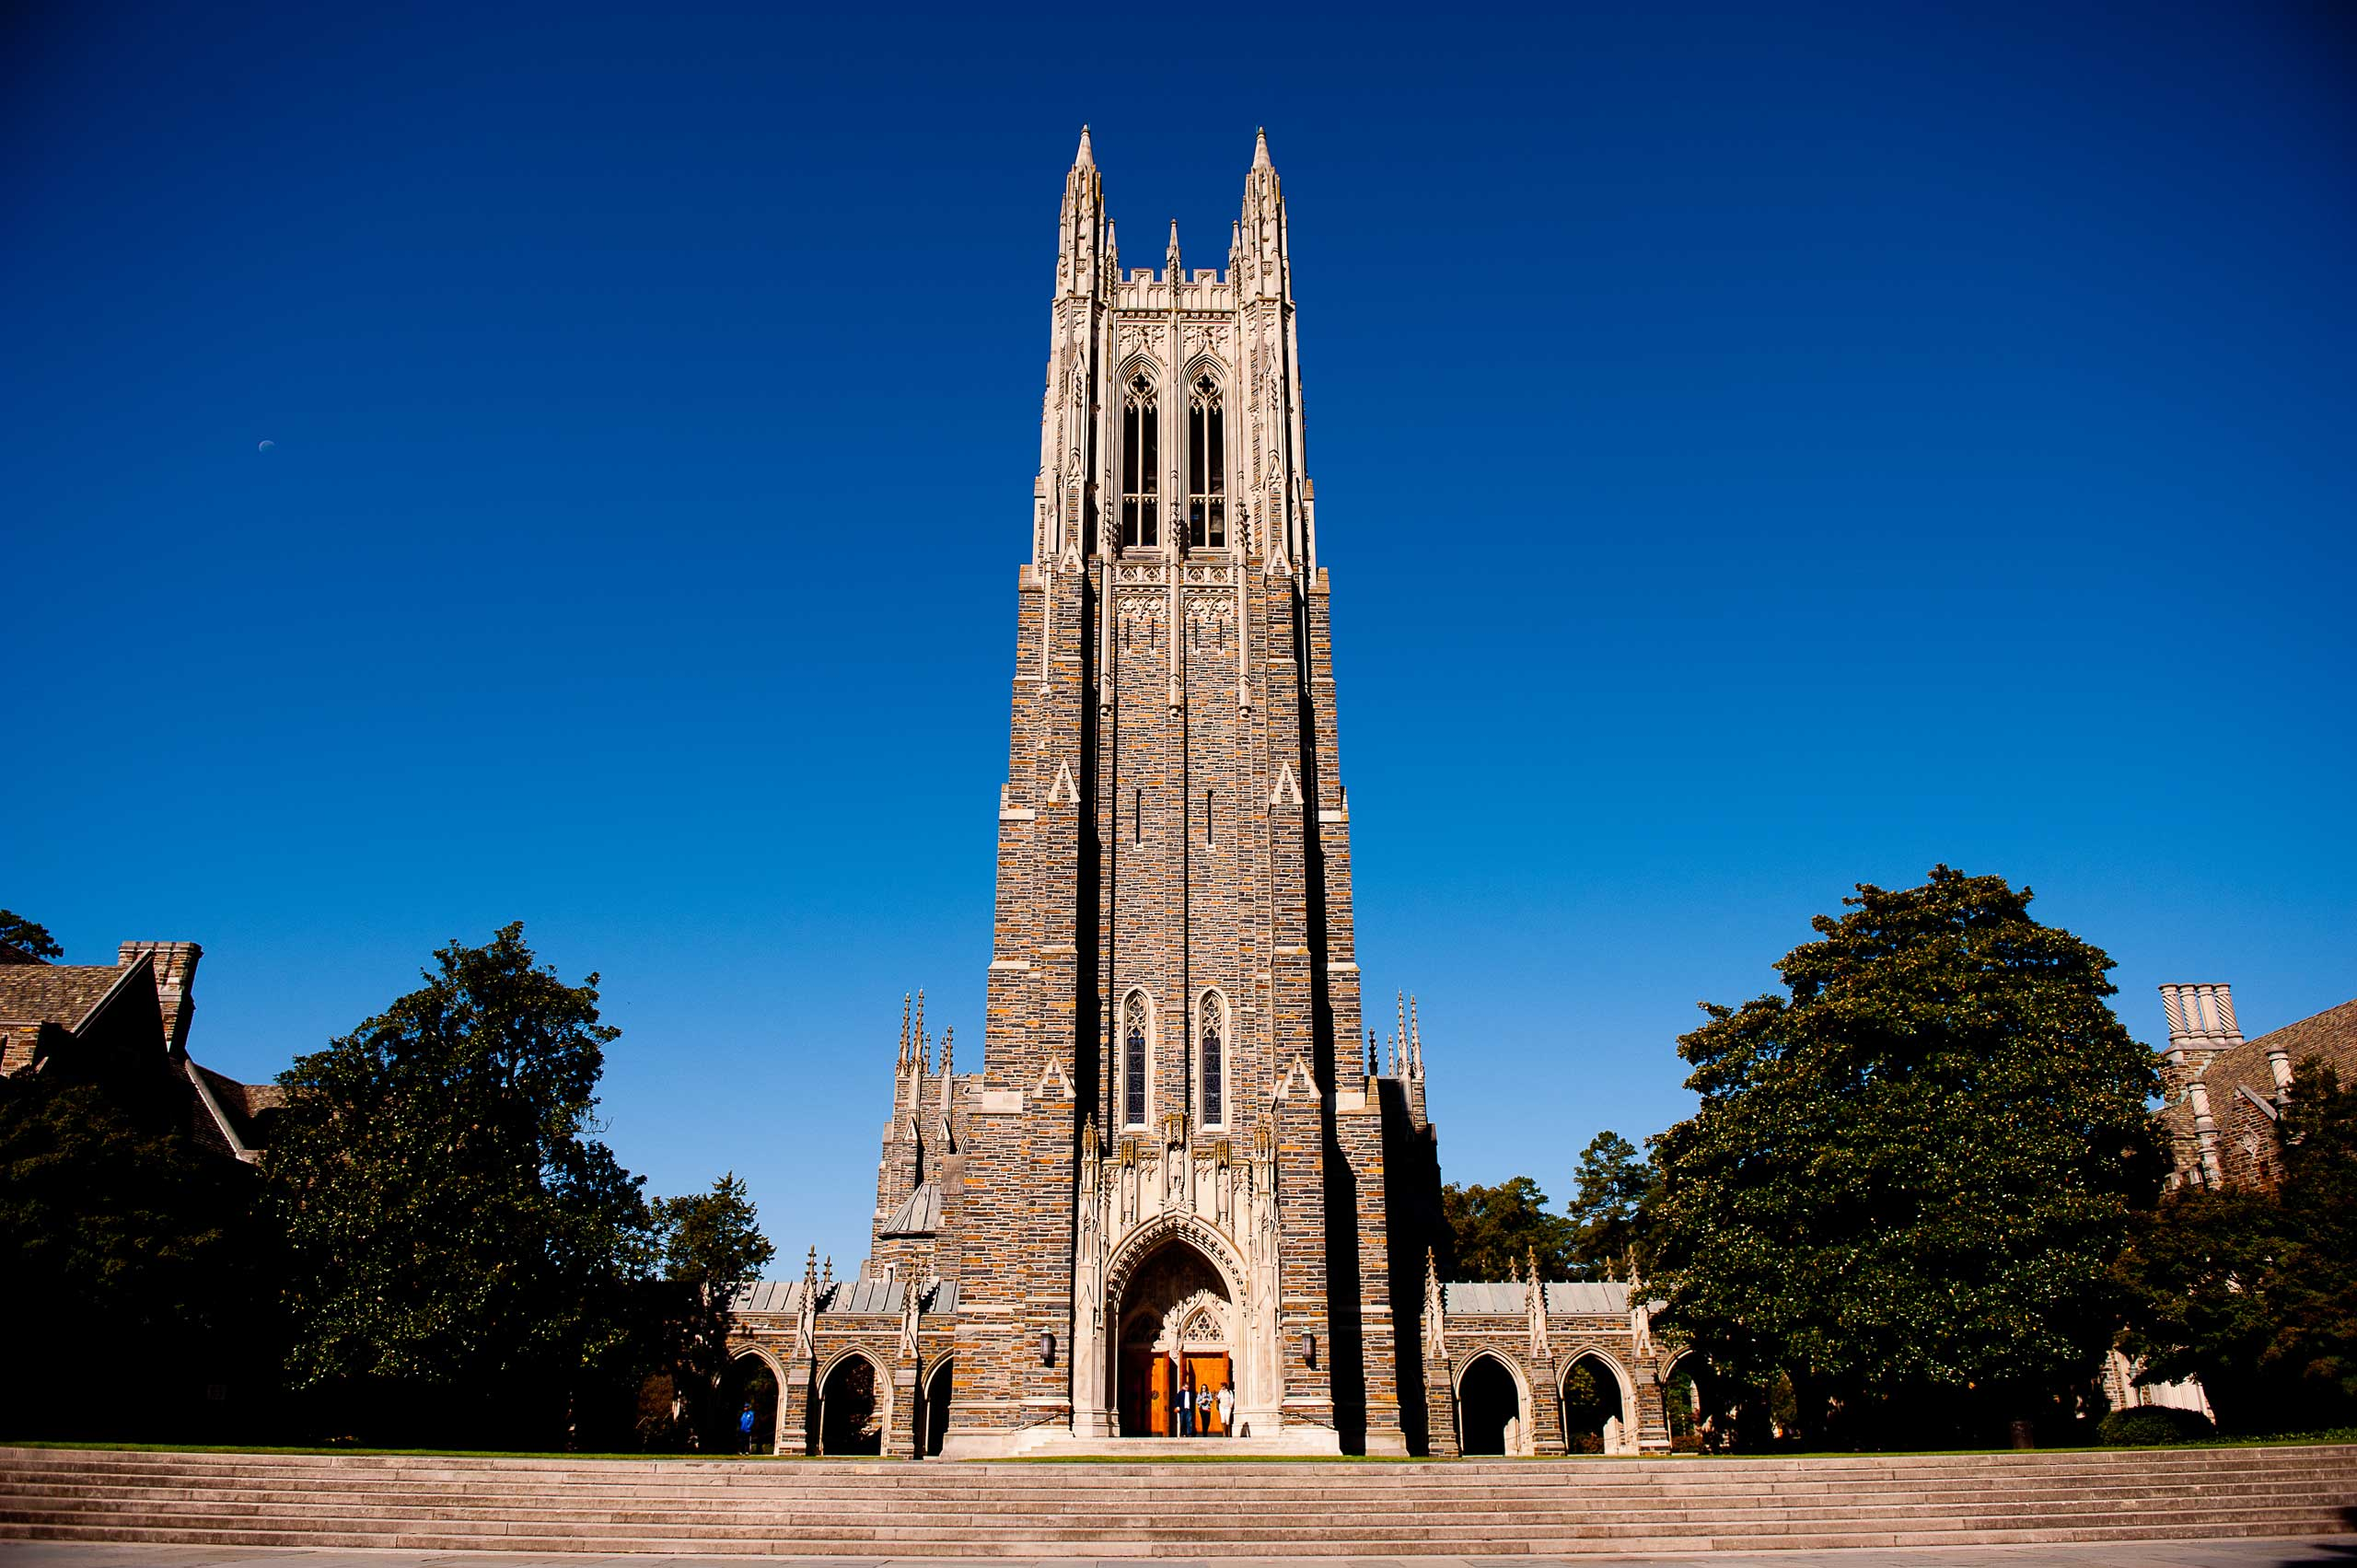 A general view of the Duke University Chapel on campus of Duke University in Durham, N.C.